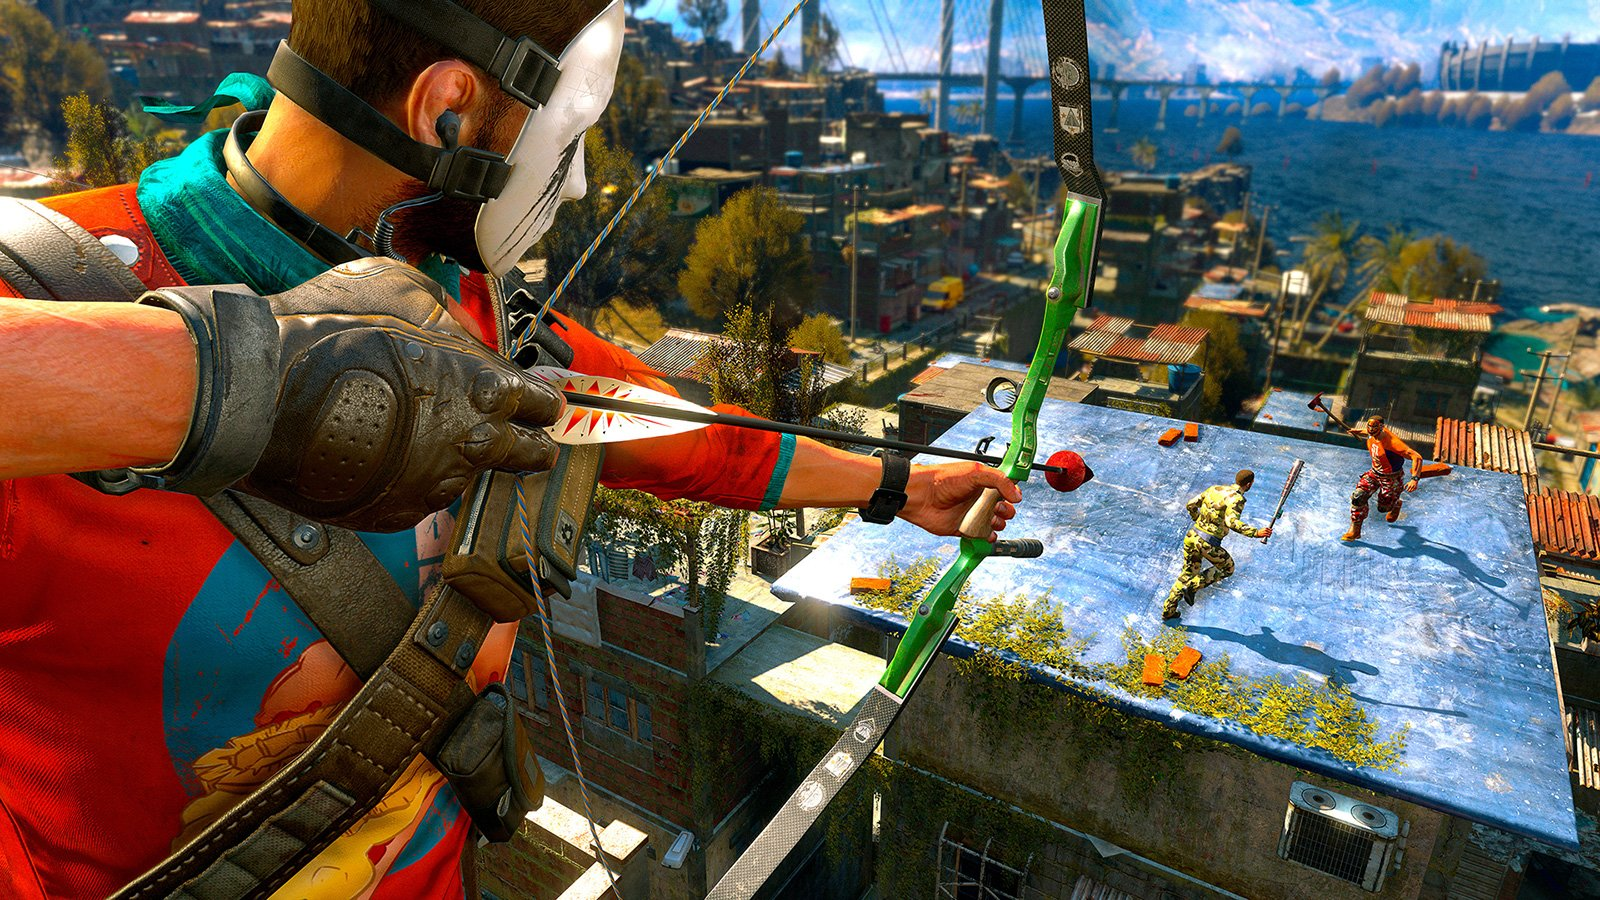 Dying Light: Bad Blood is fun while it lasts